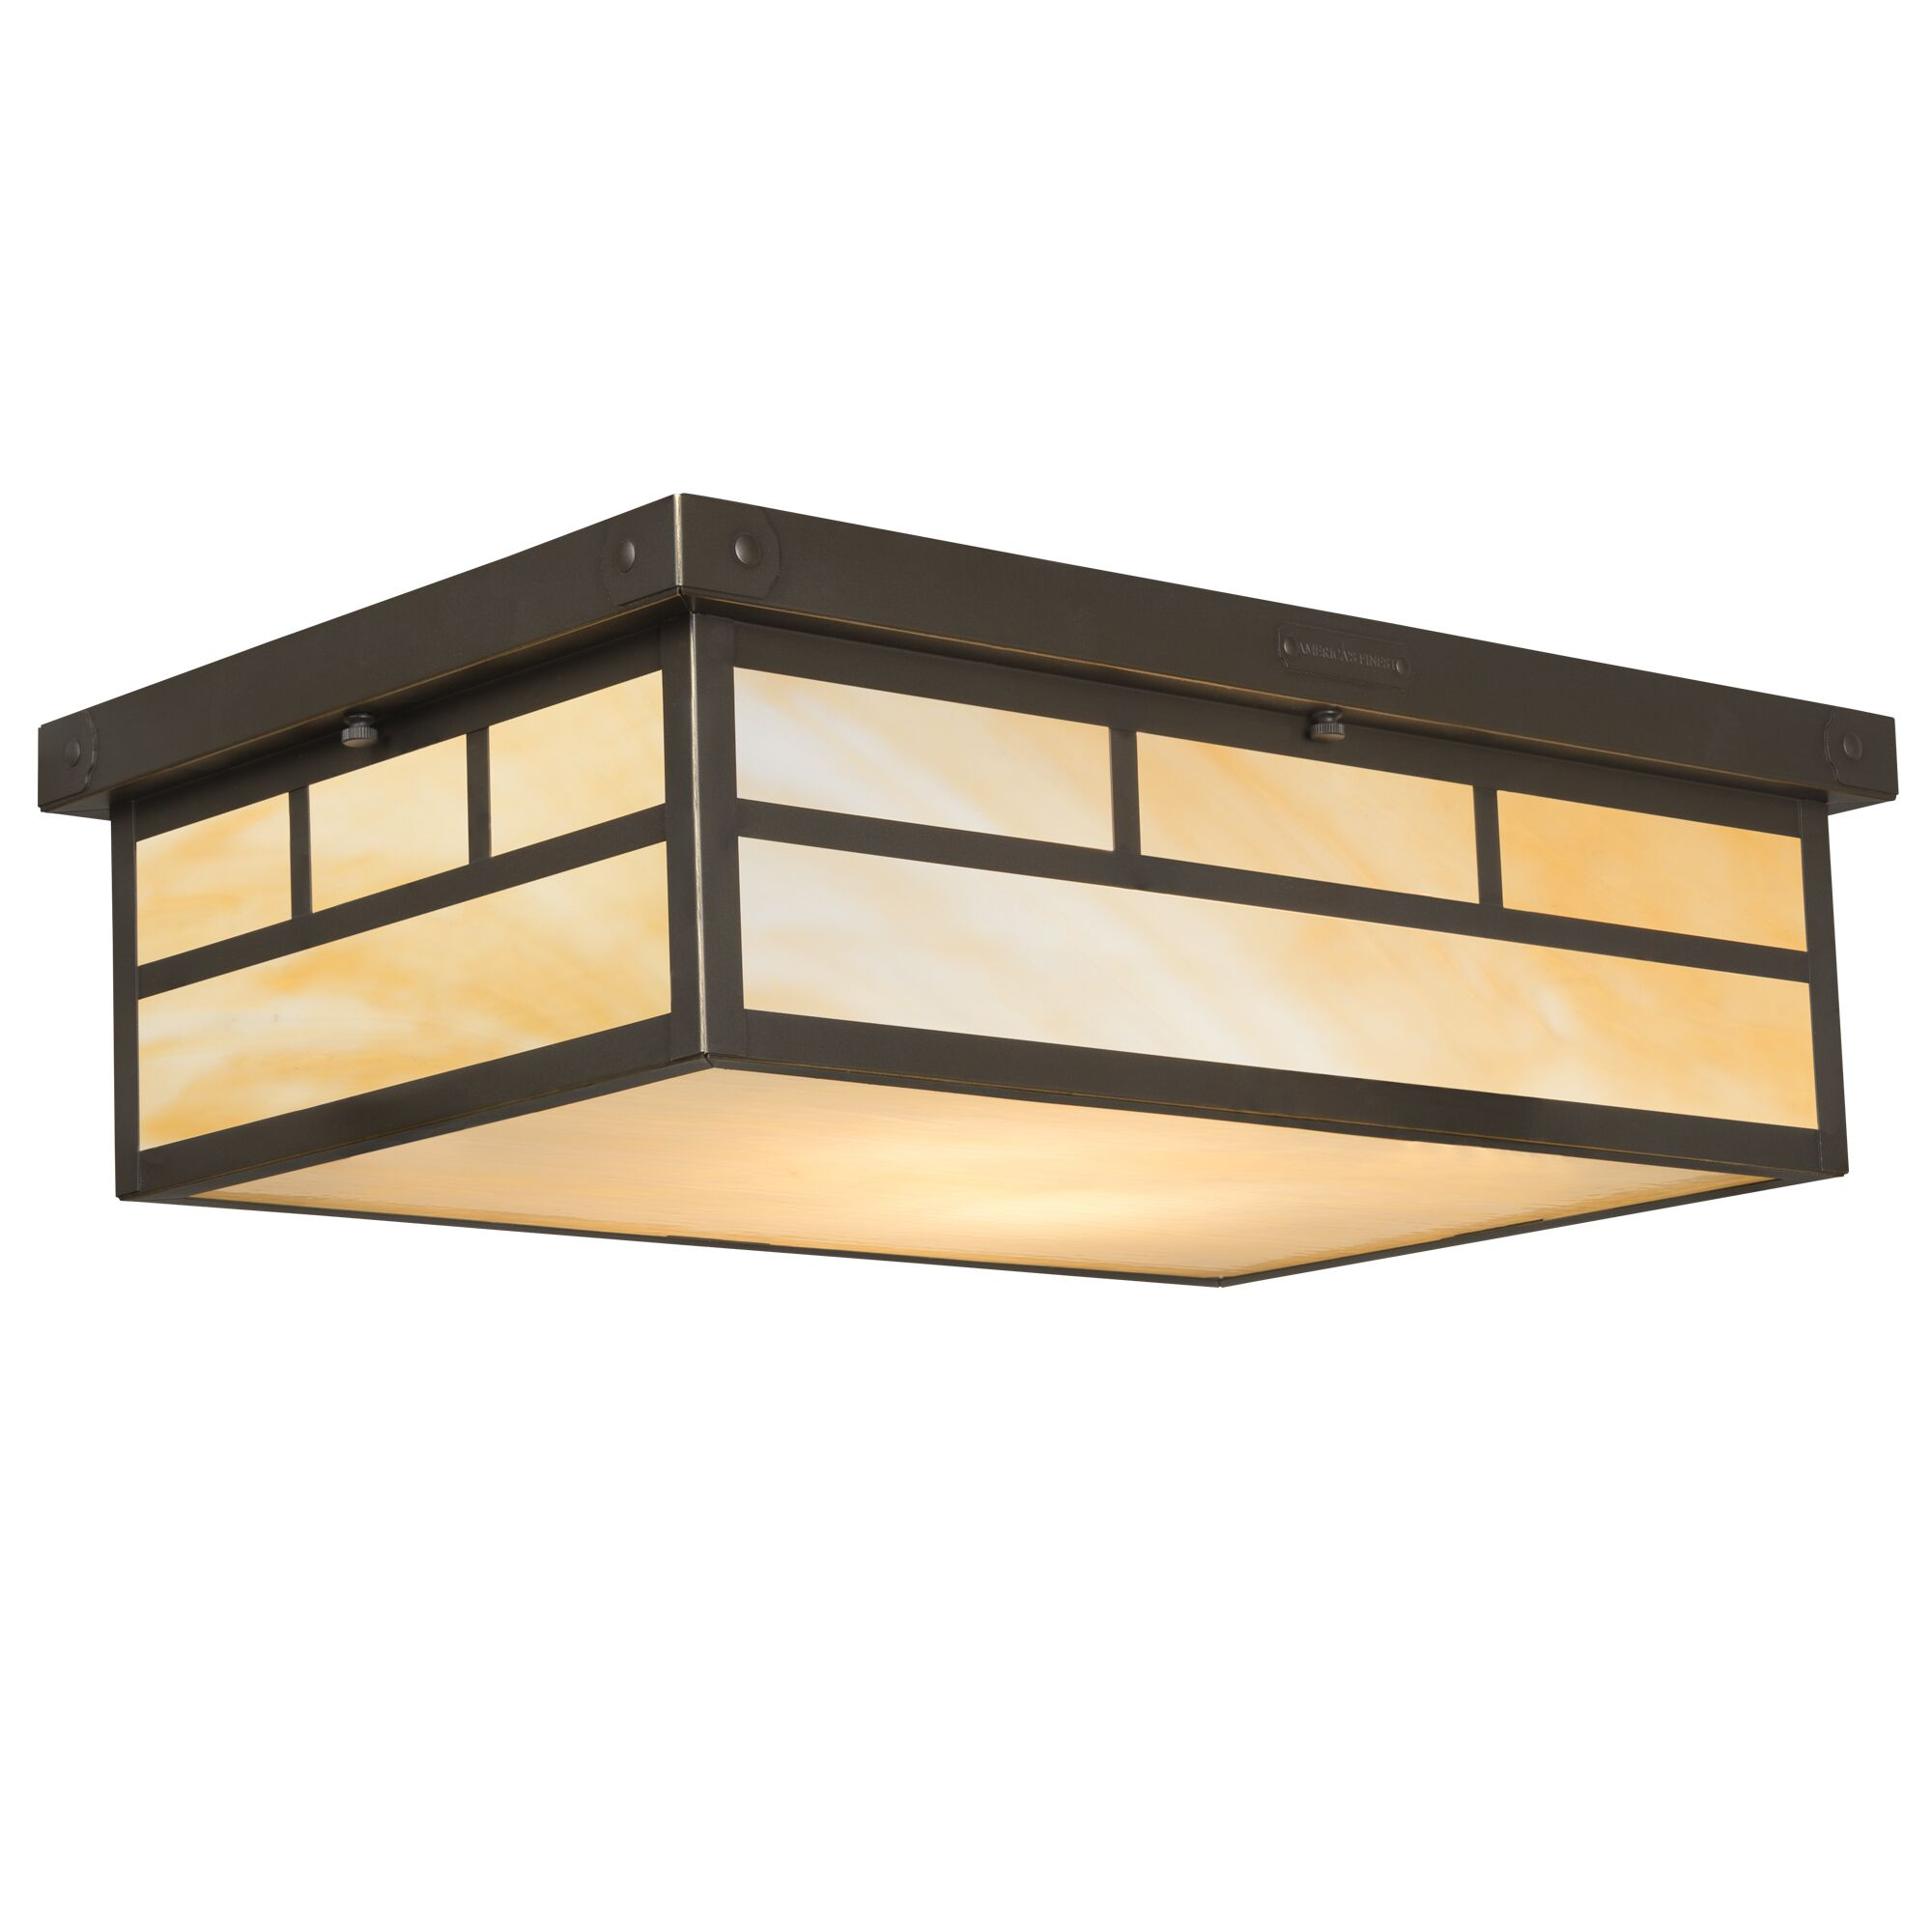 Emond 2-Light Flush Mount Shade Color: Gold Iridescent, Fixture Finish: Old Penny